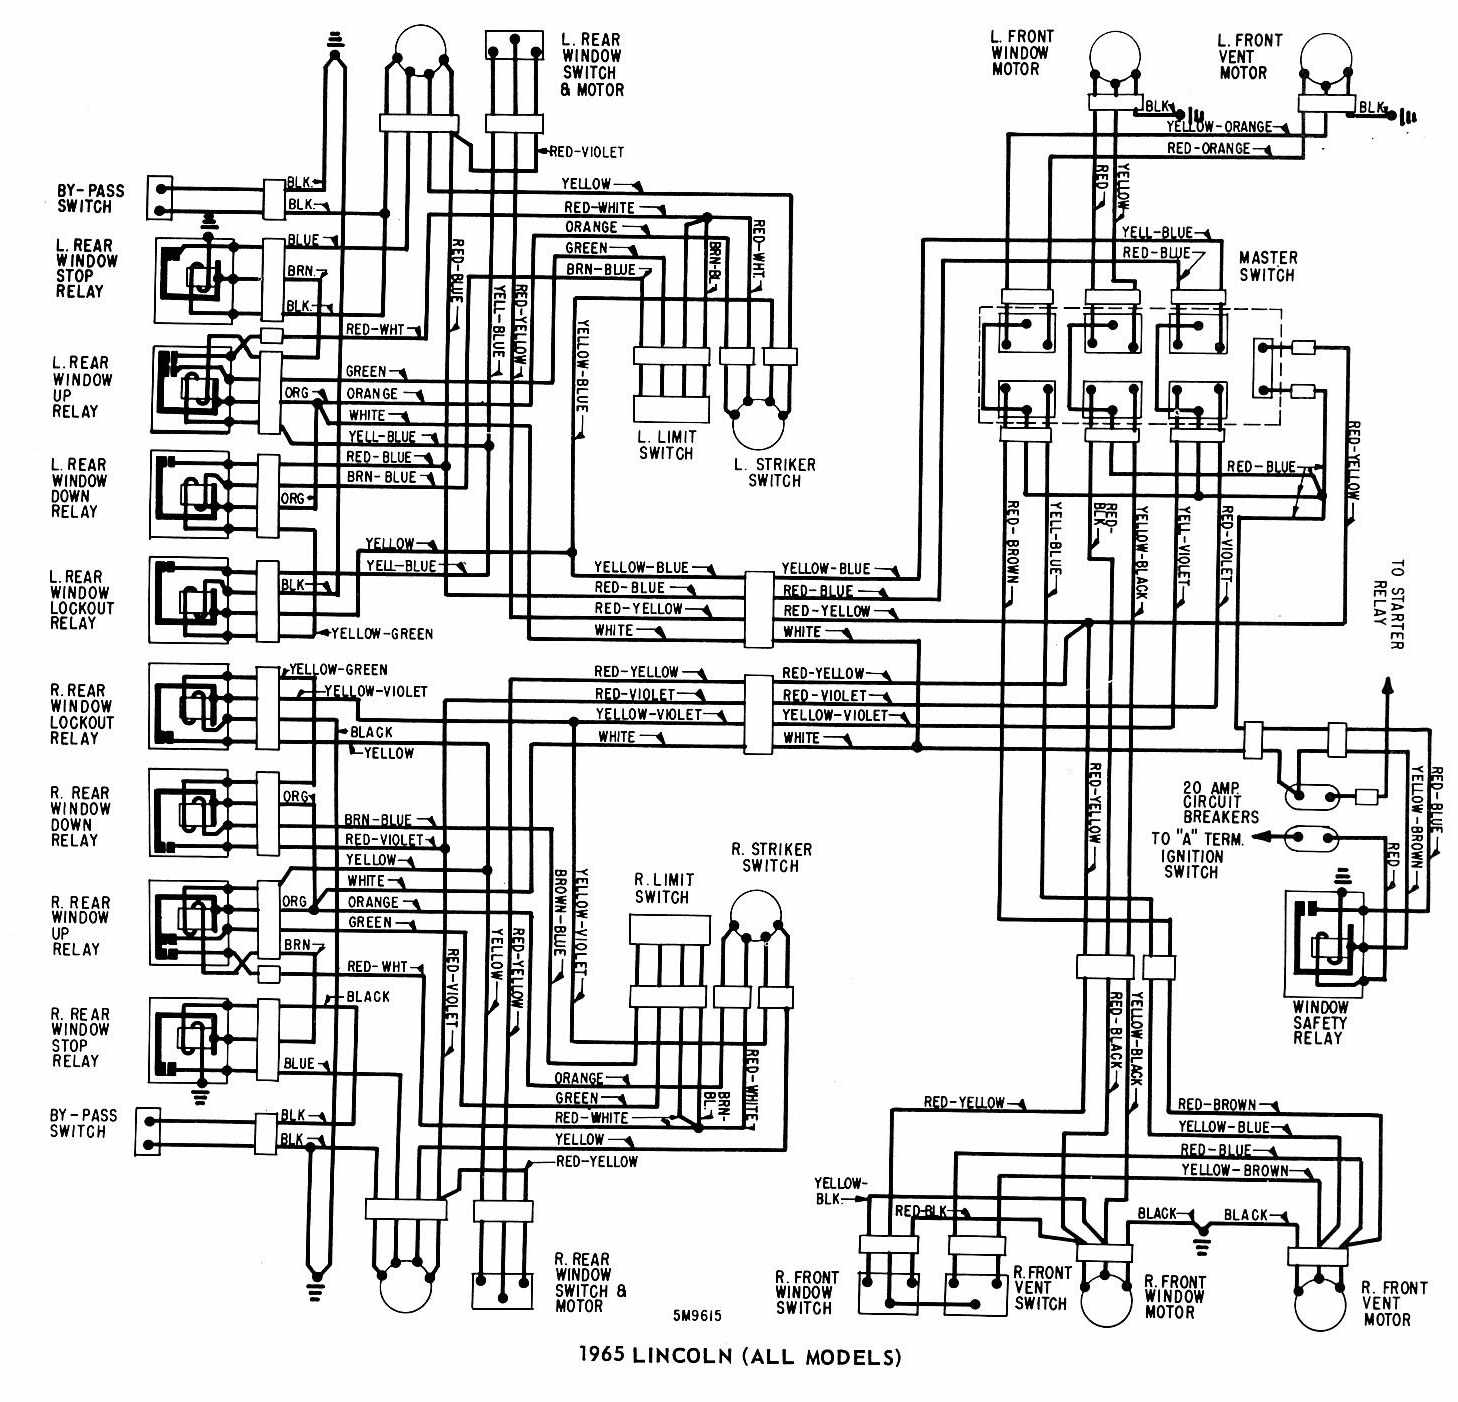 small resolution of 1971 lincoln wiring diagram wiring diagrams lincoln continental engine diagram 1976 lincoln continental wiring diagrams wiring